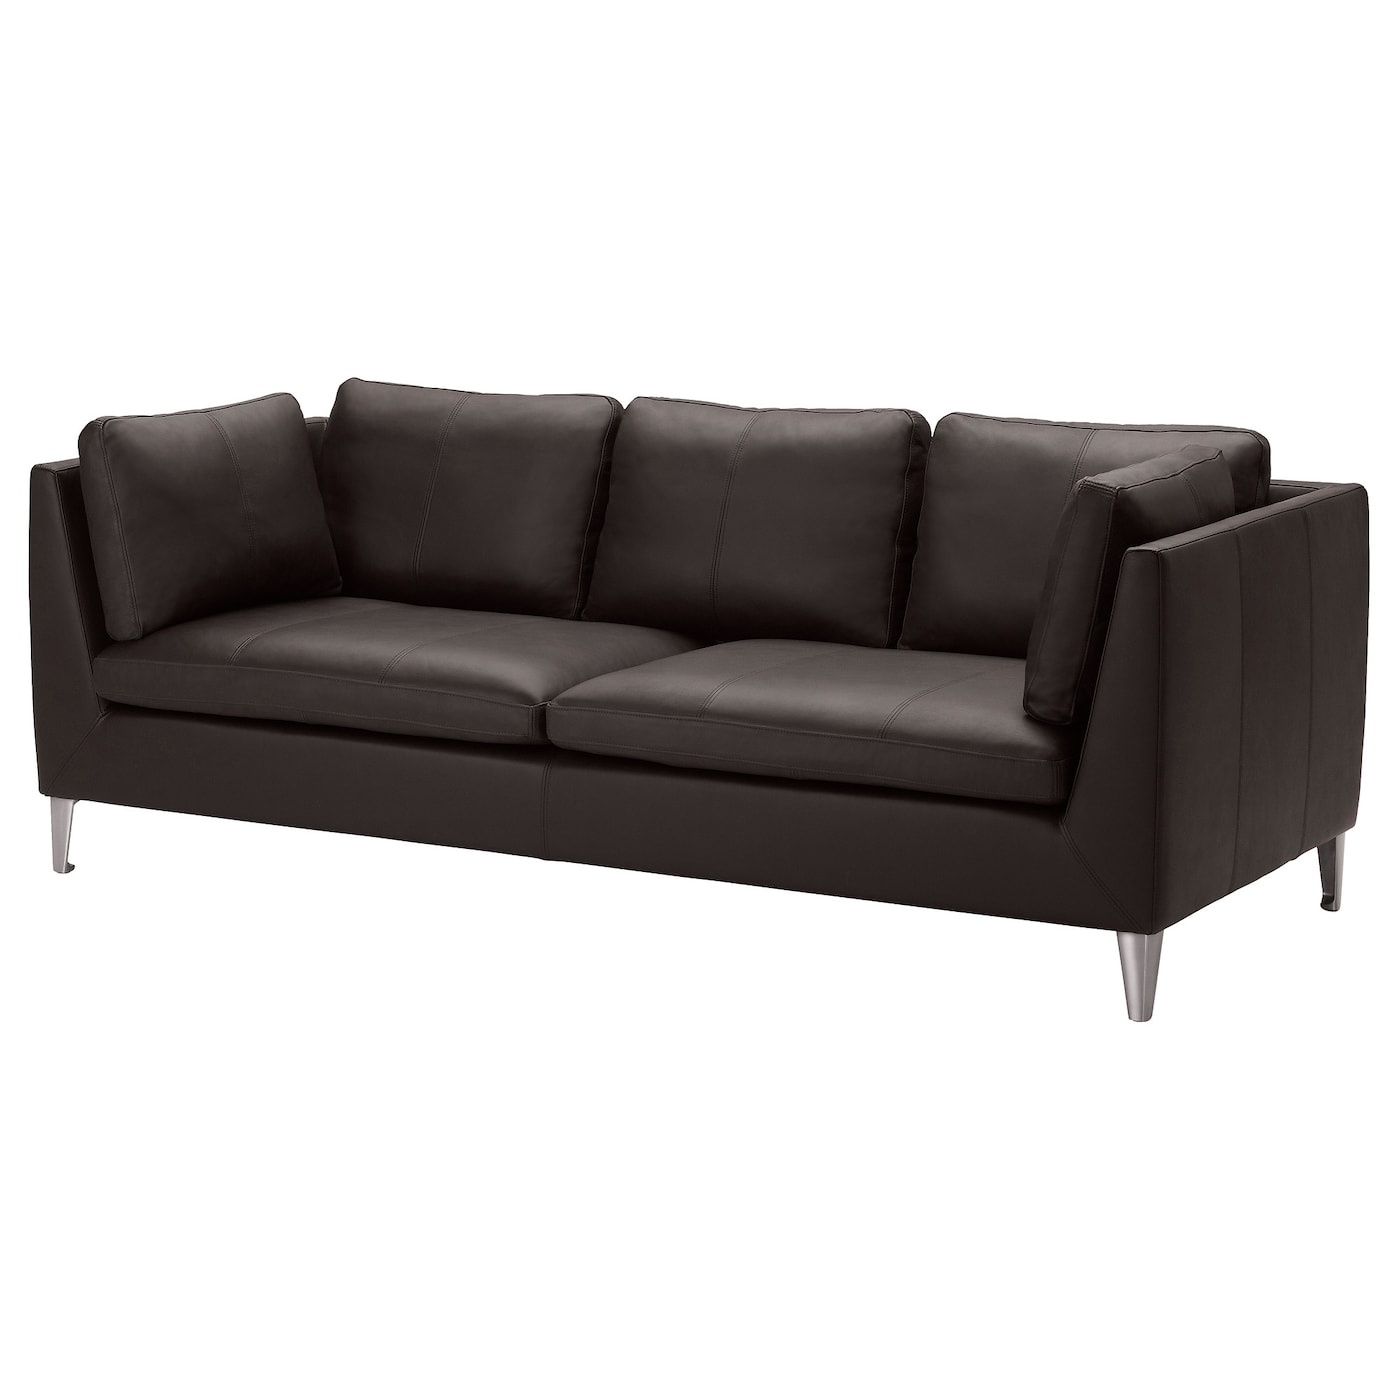 Stockholm three seat sofa seglora dark brown ikea for Stockholm sofa ikea